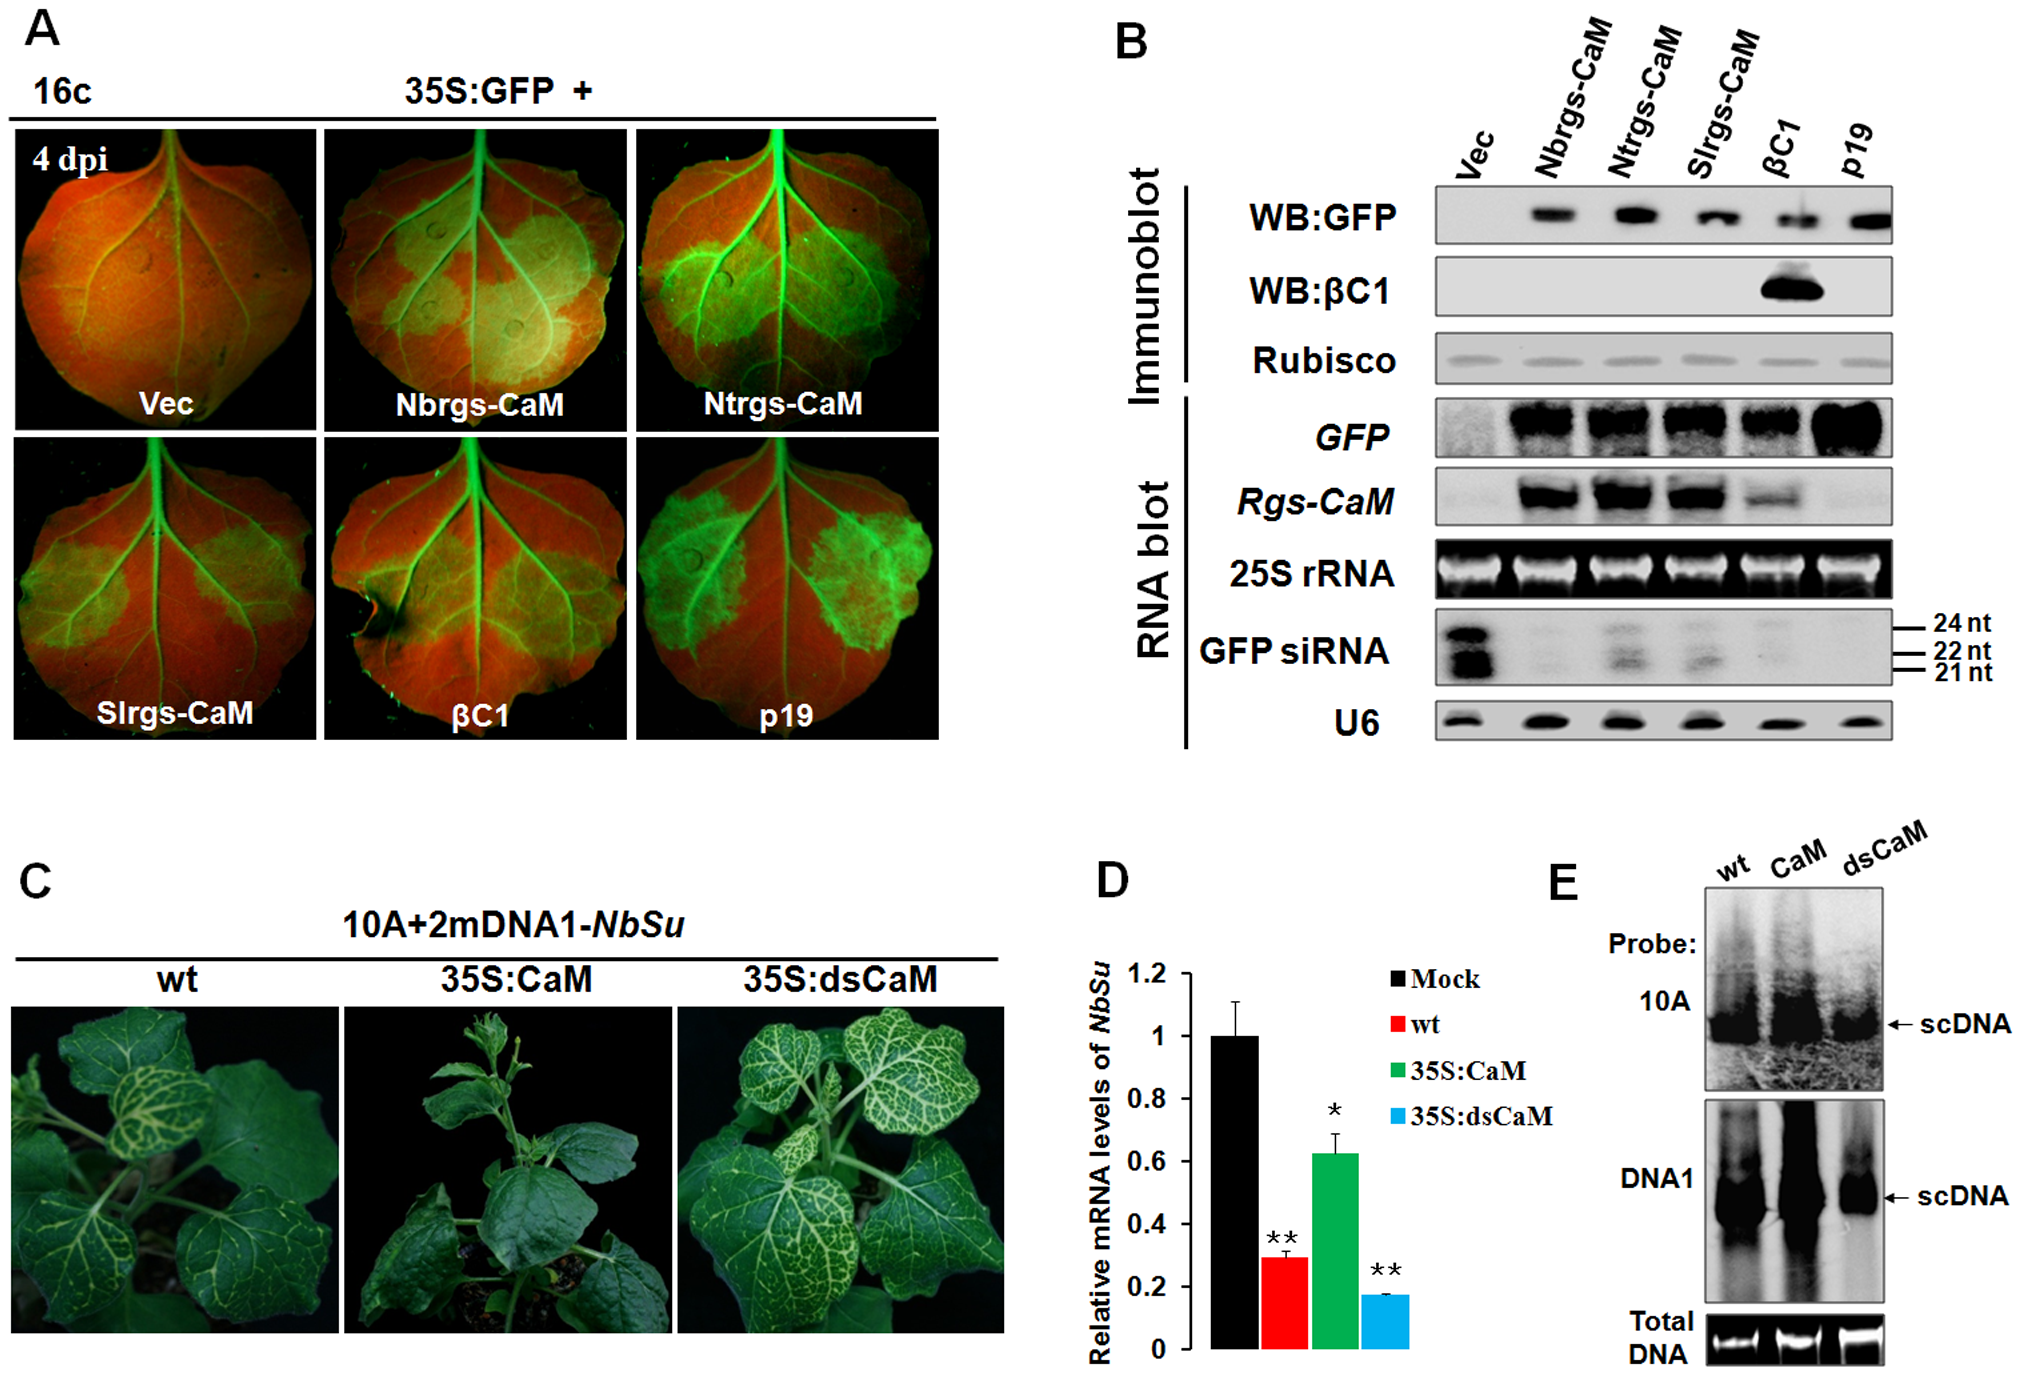 Nbrgs-CaM suppresses PTGS of GFP and VIGS of an endogenous gene.